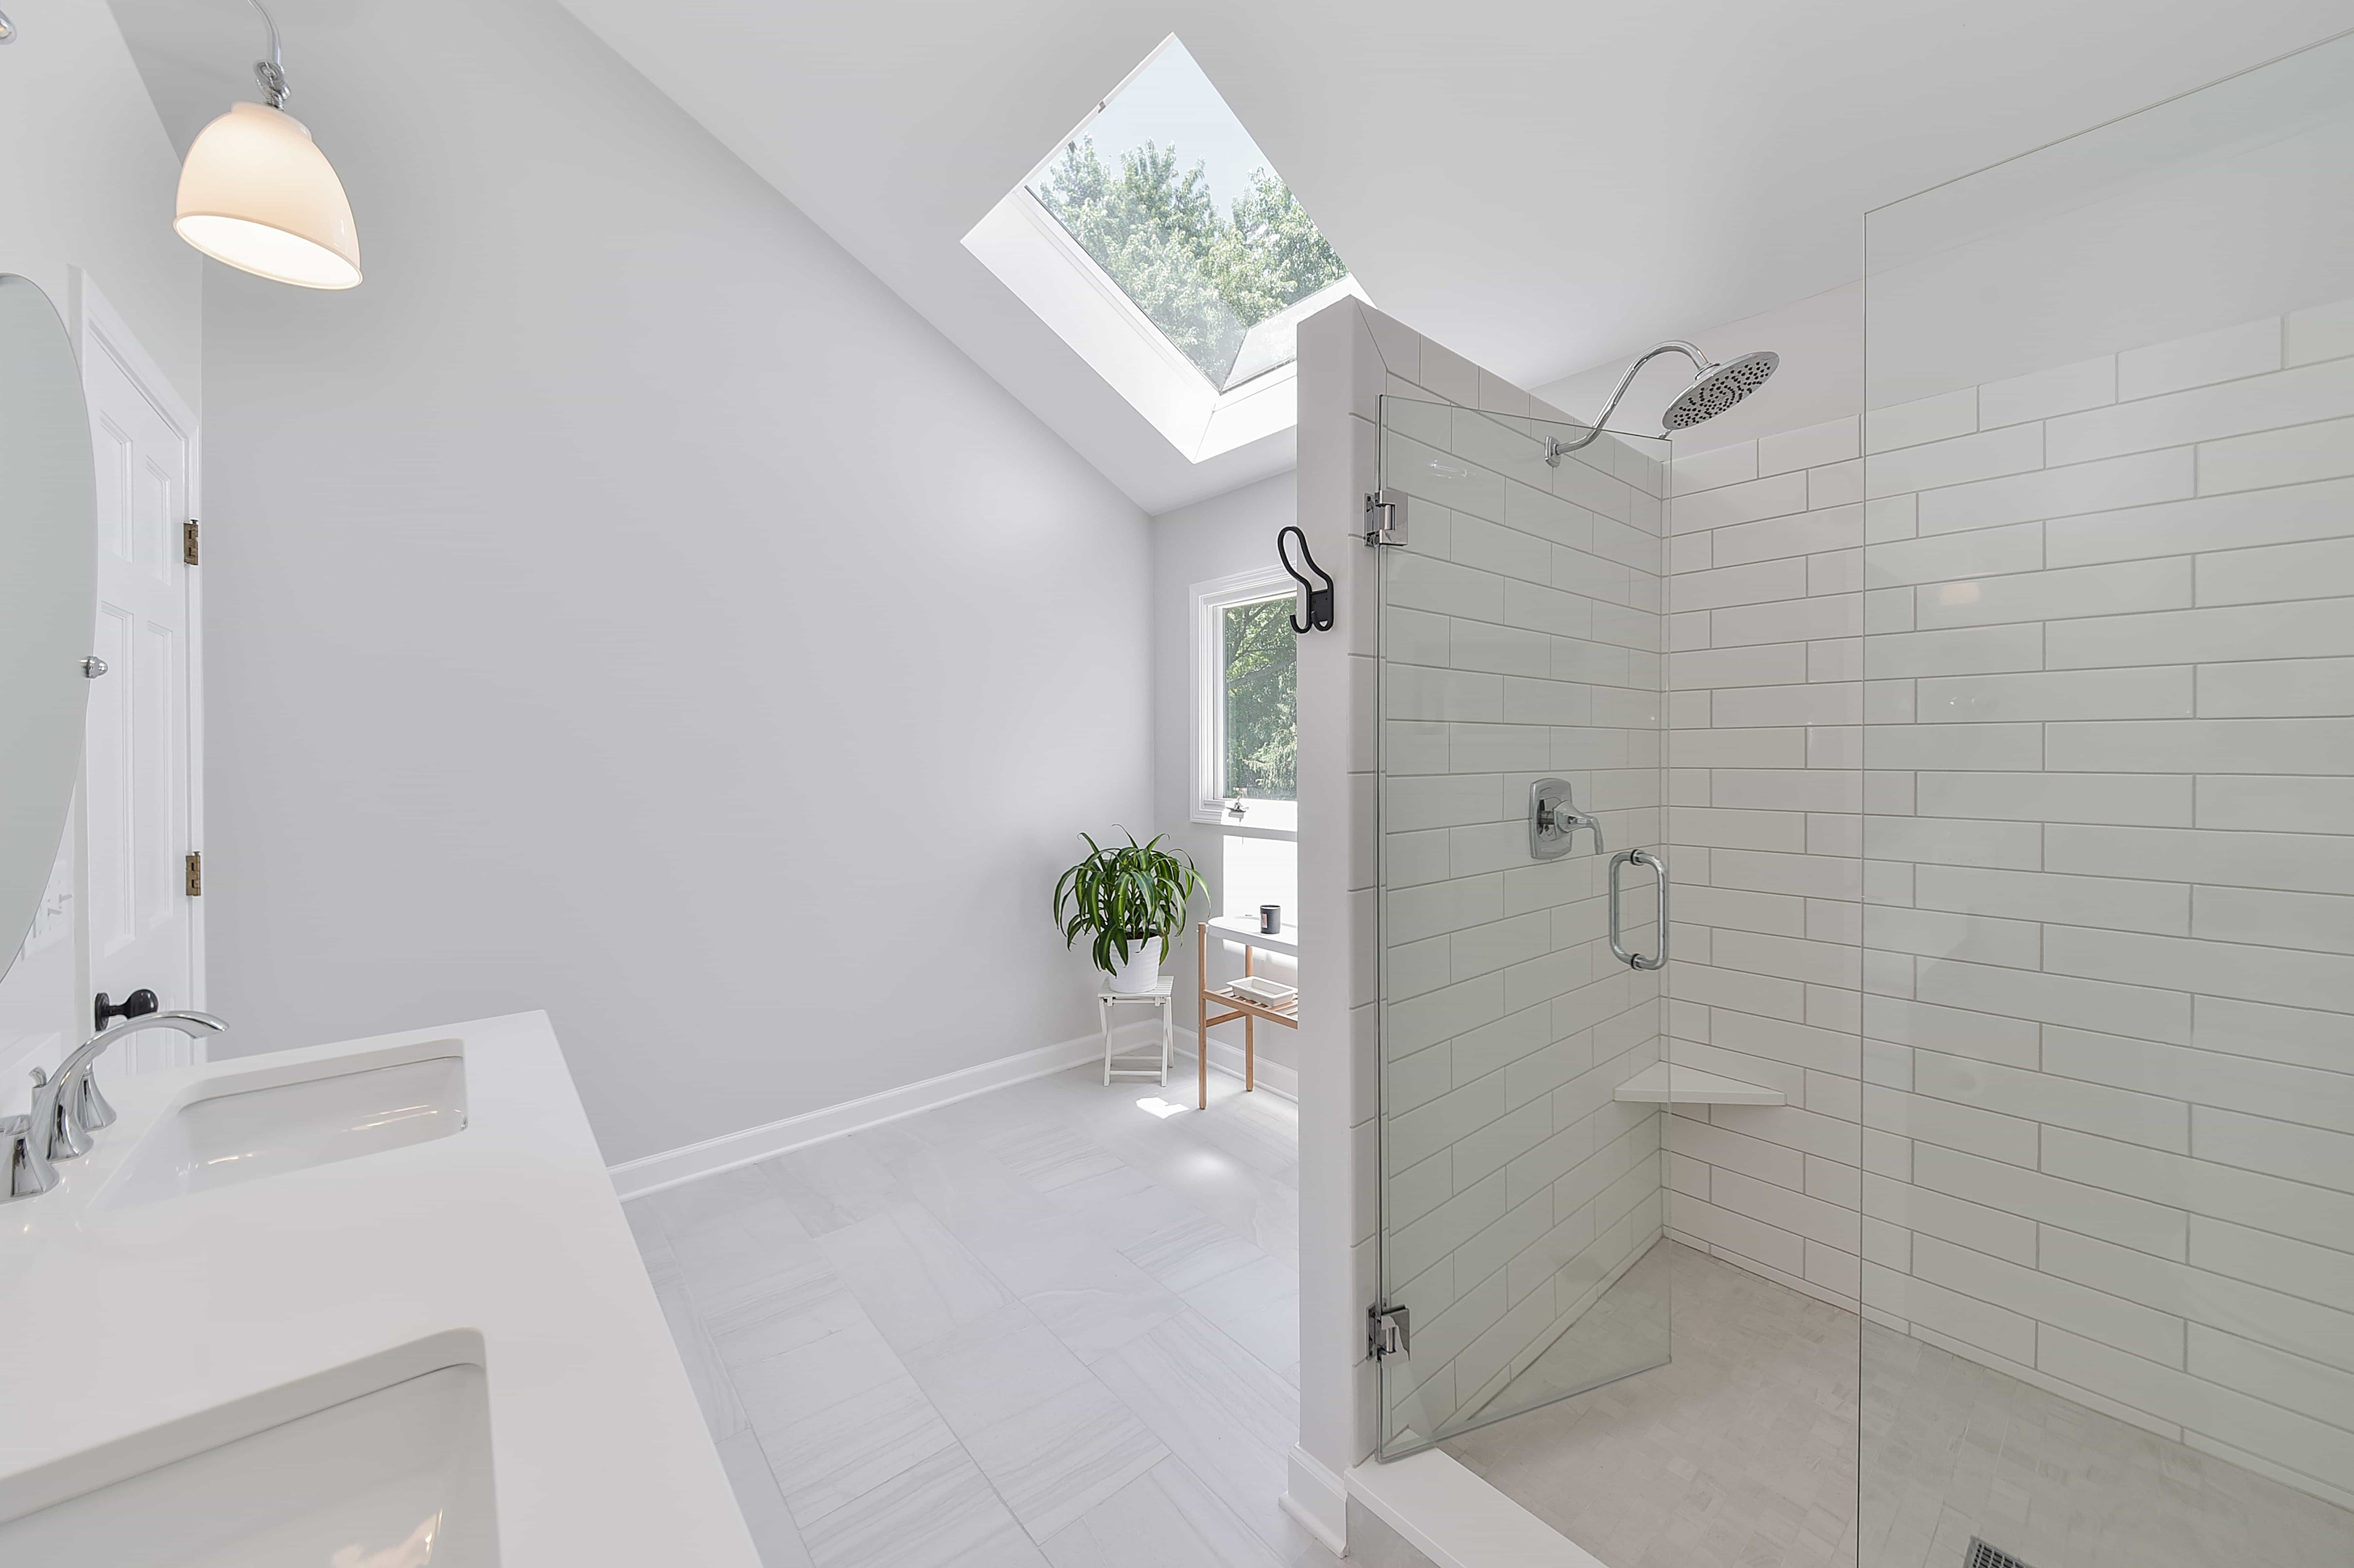 Monochromatic Contemporary Bathroom And Shower Combo With Glass Door Walk In Subway Tile Shower And Skylight (Image 11 of 16)